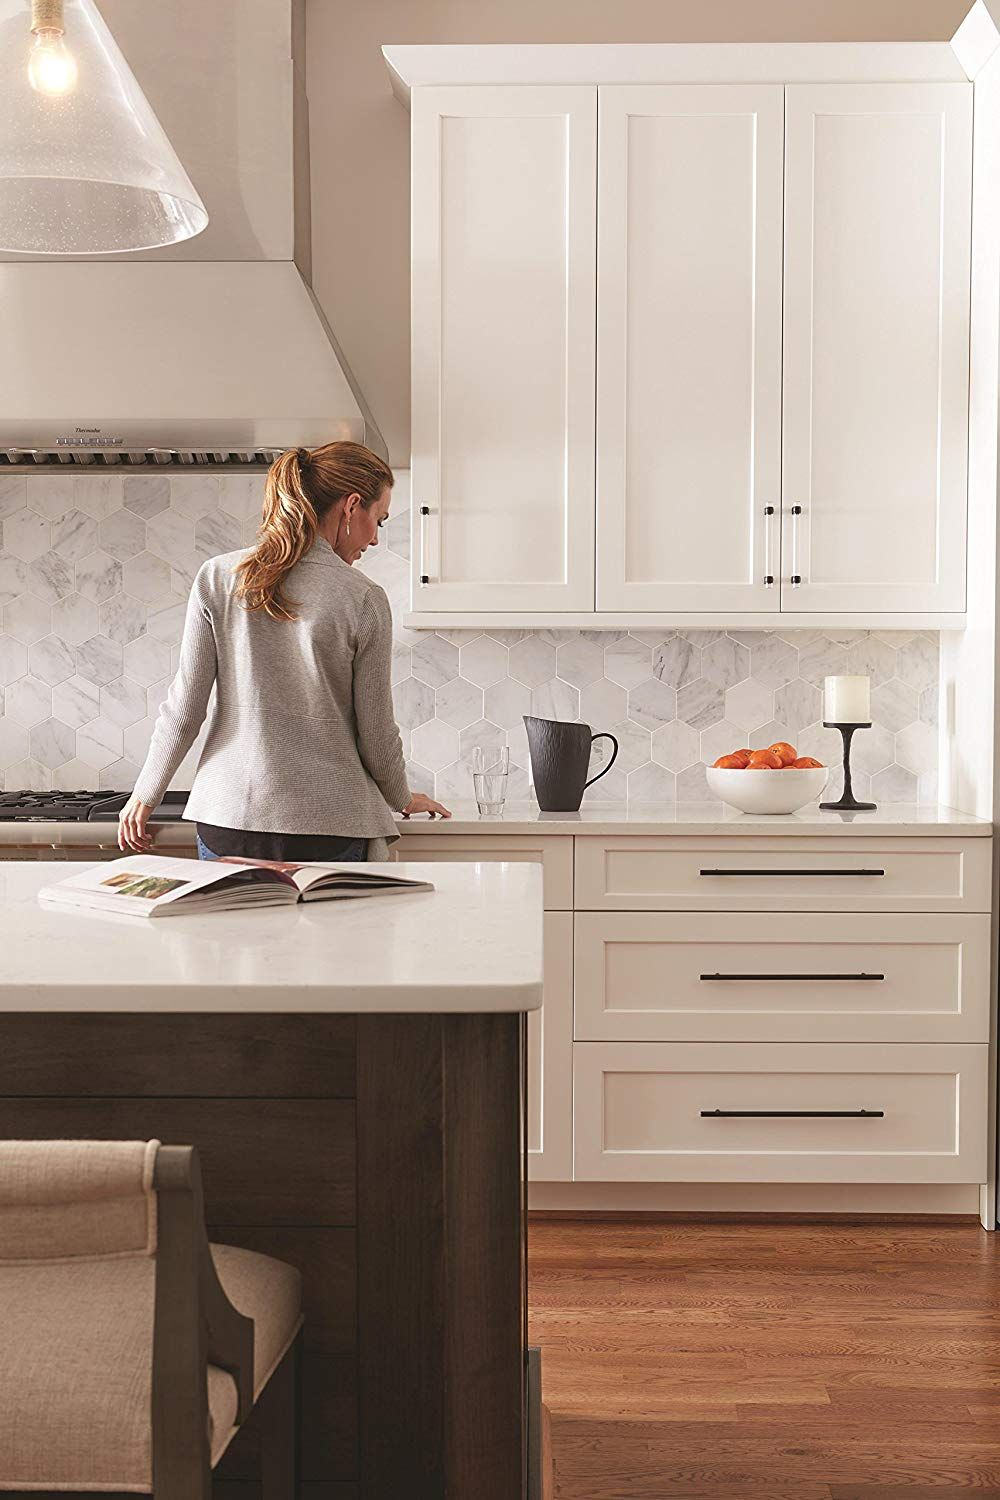 This Is A Listing For The Long Black Cabinet Pulls But I Love The Look Of This Kitchen So Much Too Black Cabinets White Shaker Cabinets New Kitchen Cabinets